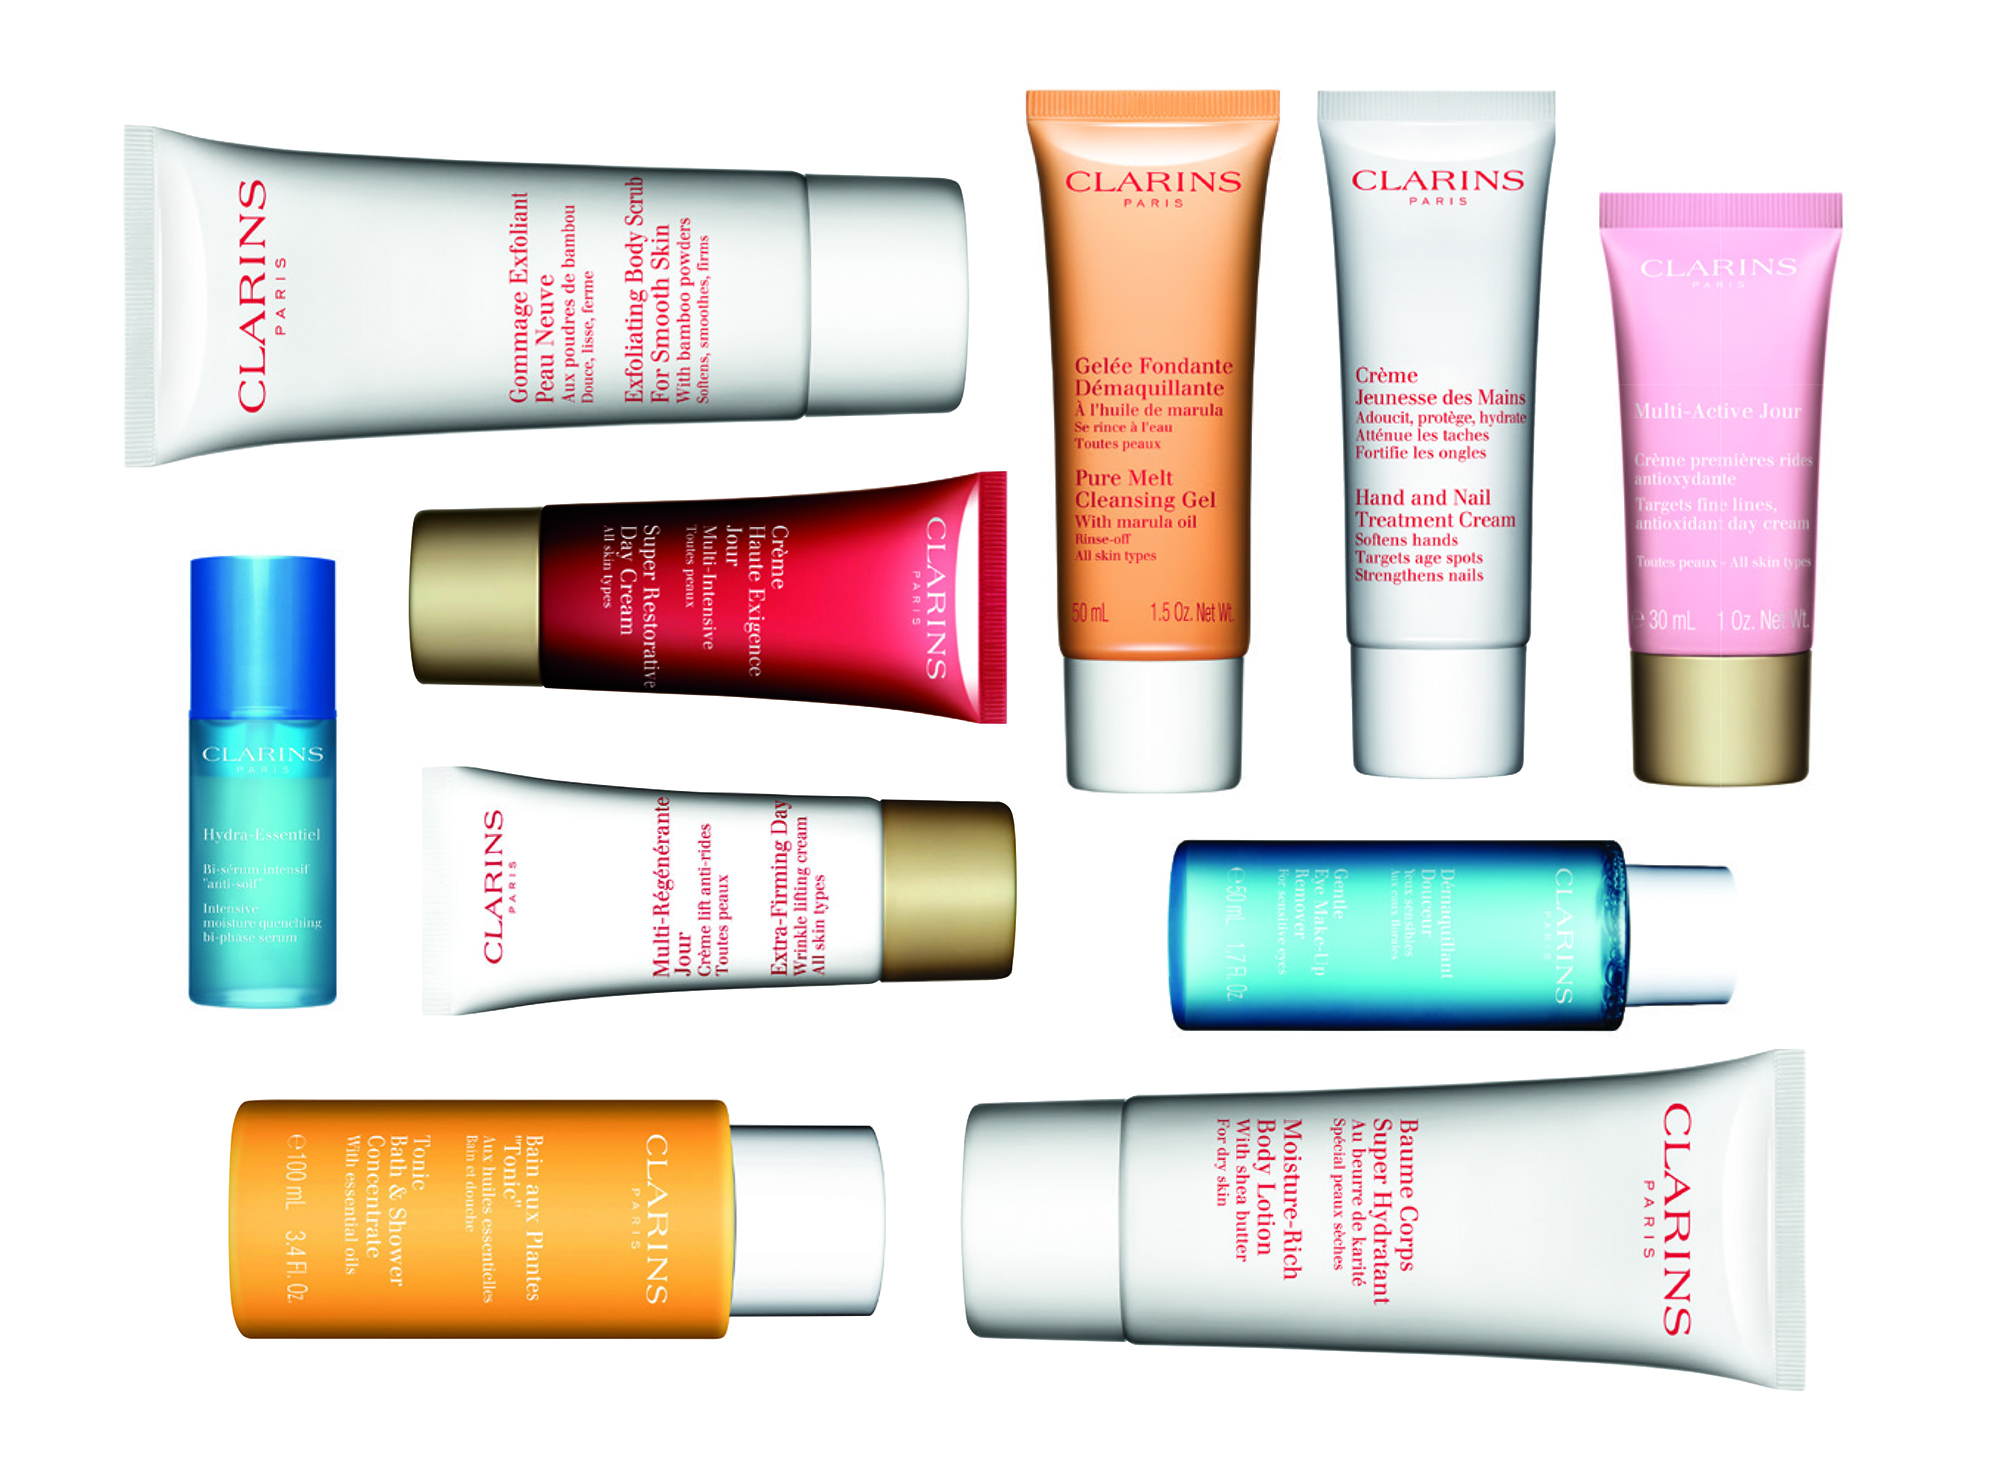 Clarins Summer Travel Offer